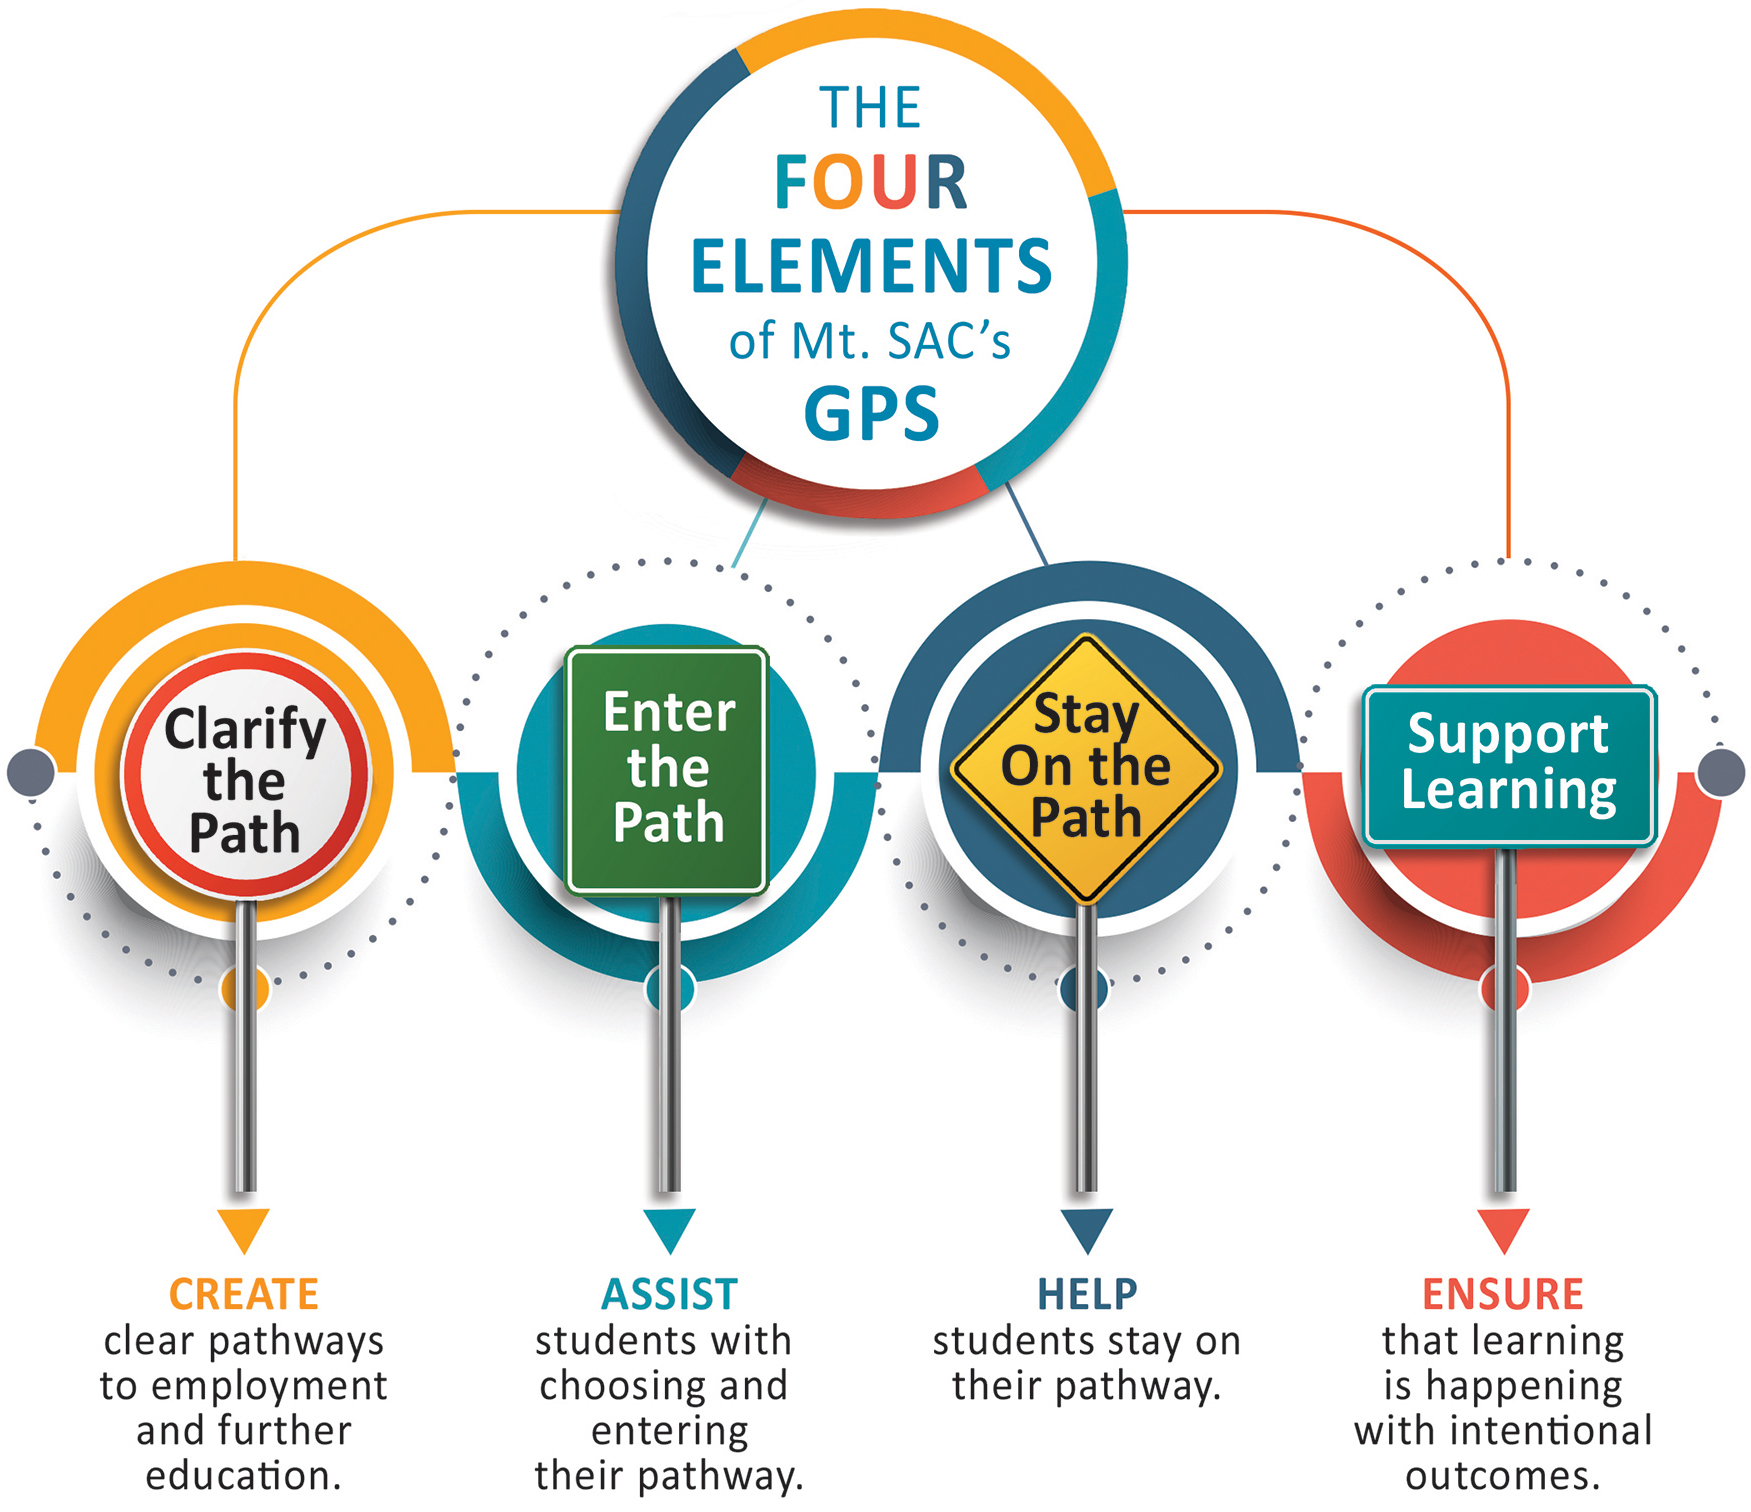 The four elements of Guided Pathways: Clarify the path, enter the path, stay on the path, support learning